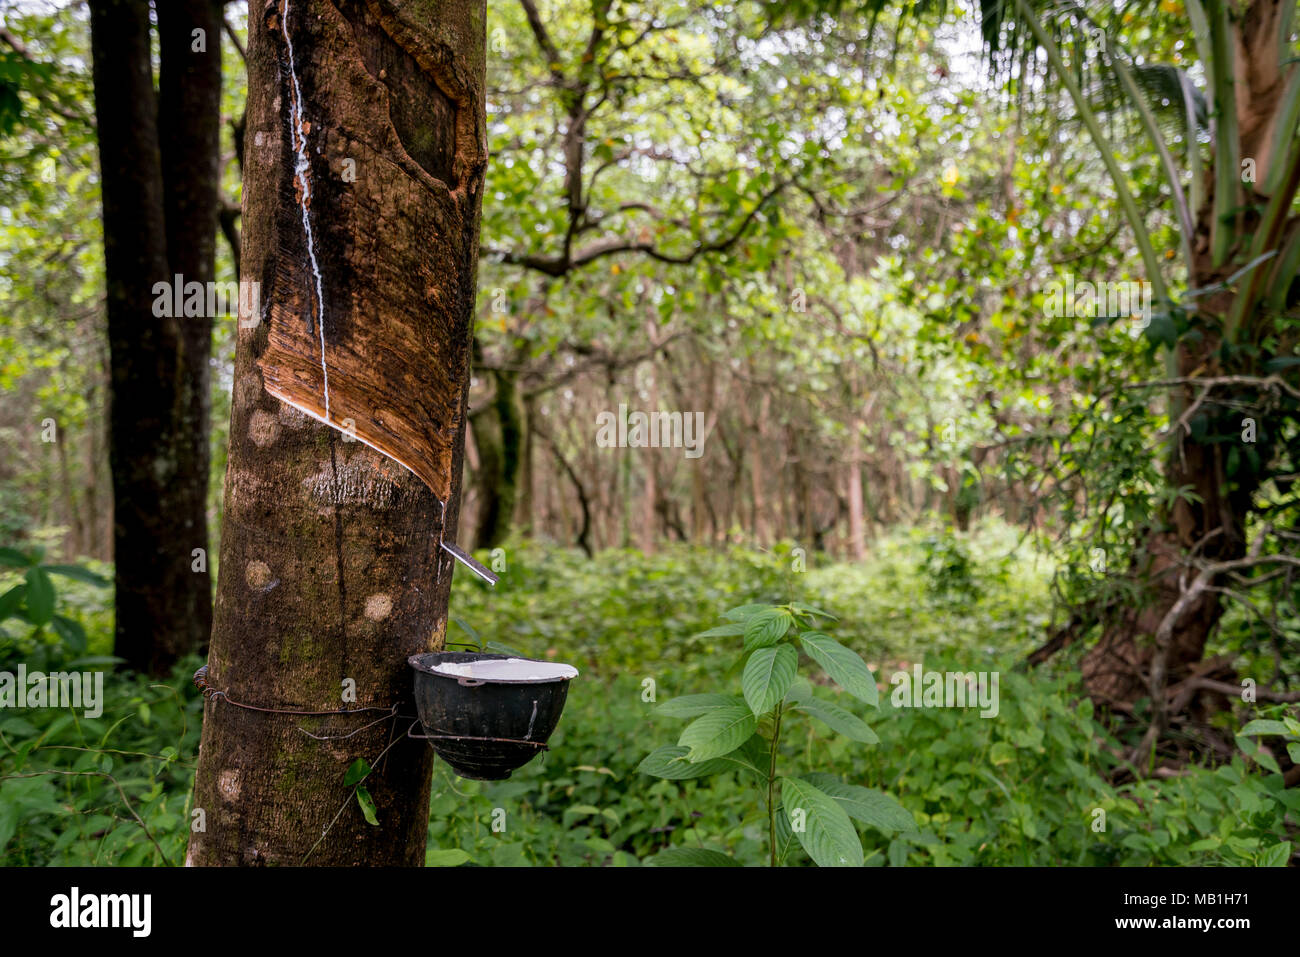 Plantation of rubber trees in the jungle on Koh Phayam in Thailand - Stock Image